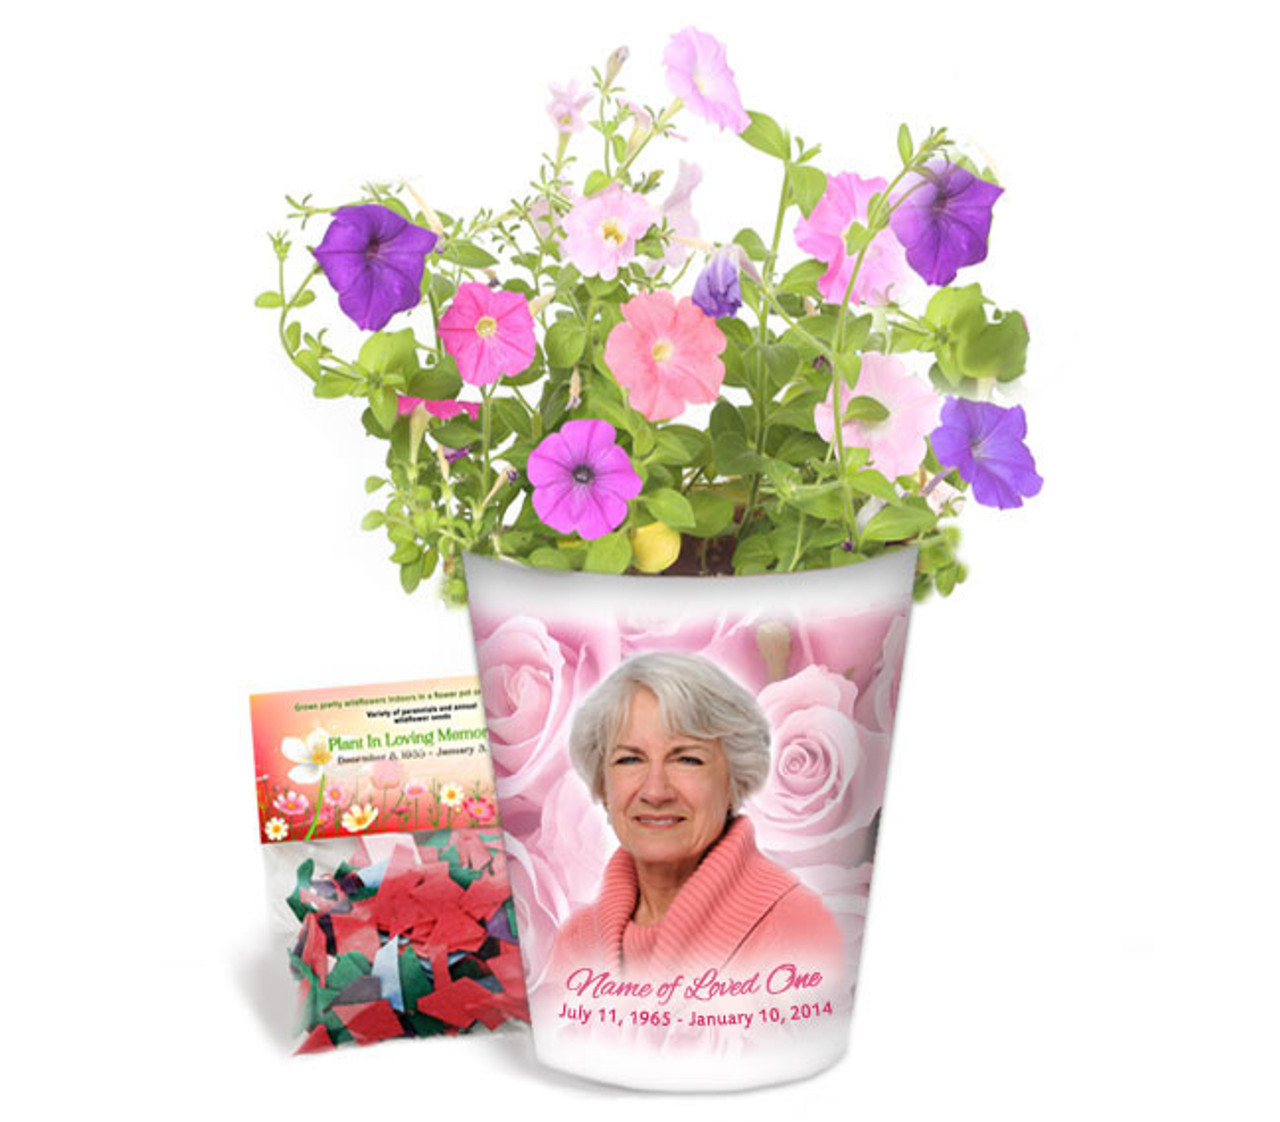 Pink Roses Personalized Memorial Ceramic Flower Pot - Funeral Program Site  sc 1 st  The Funeral Program Site & Pink Roses Personalized Memorial Ceramic Flower Pot - Funeral ...